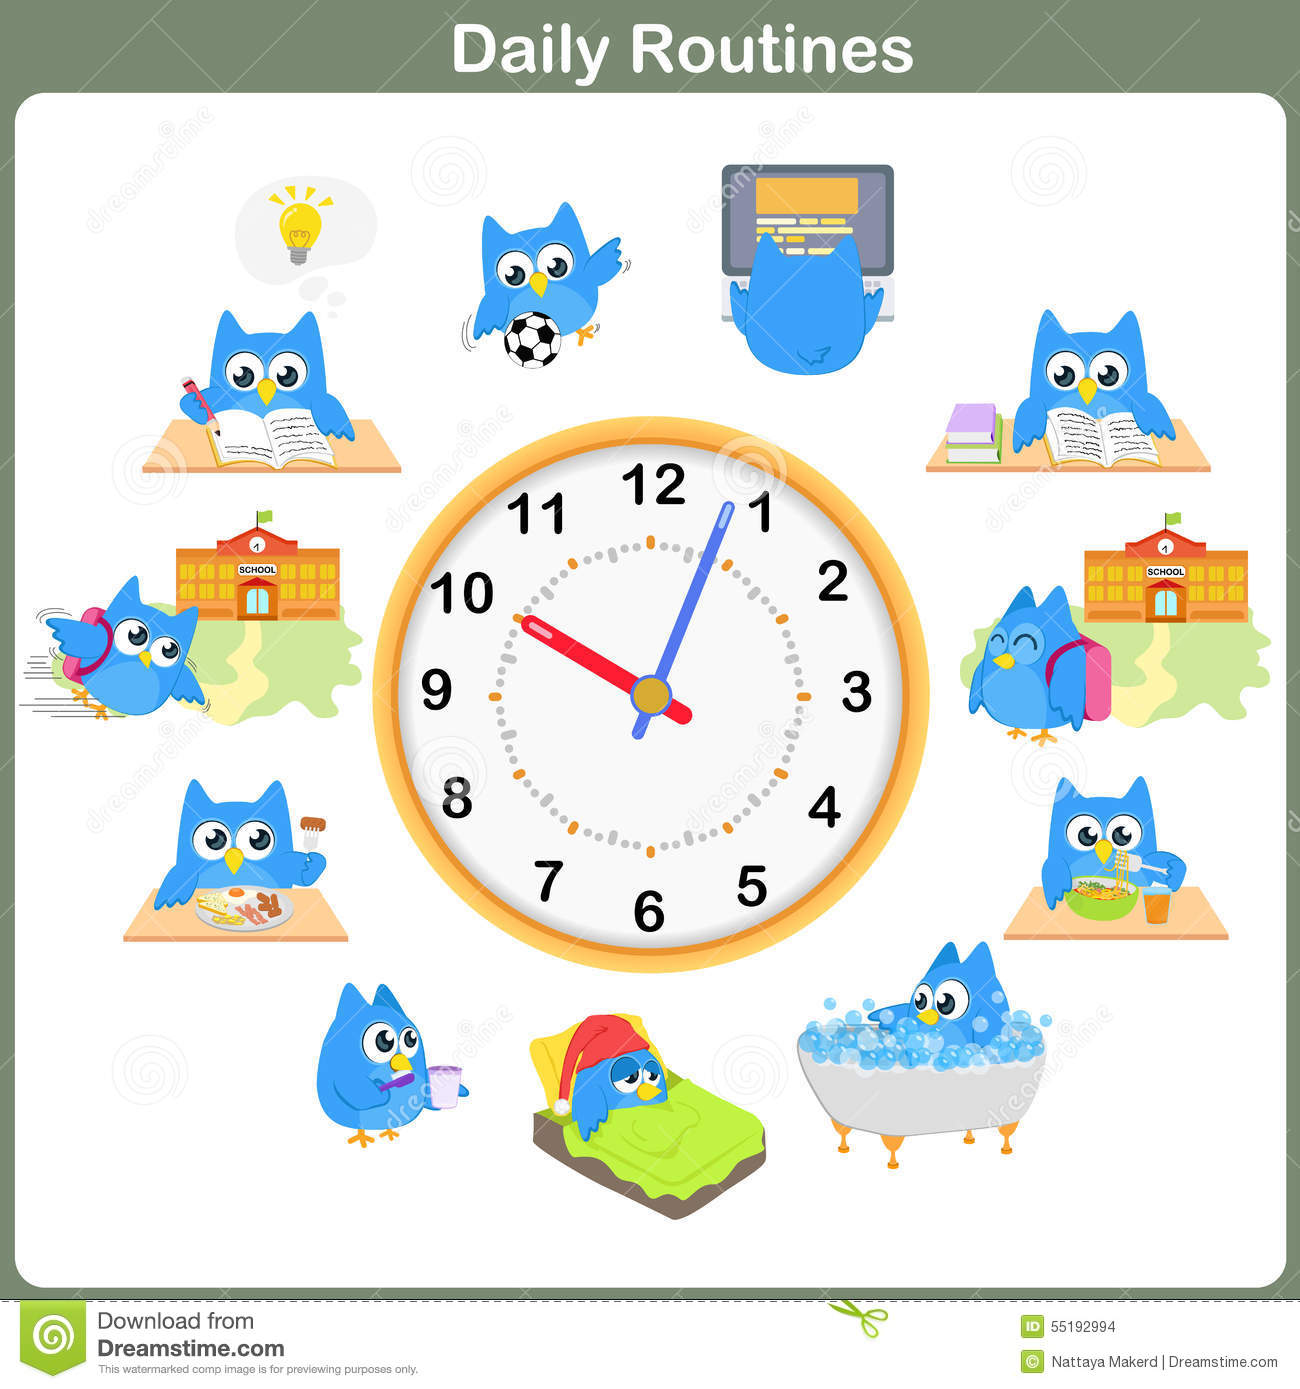 Daily Routines Sheet